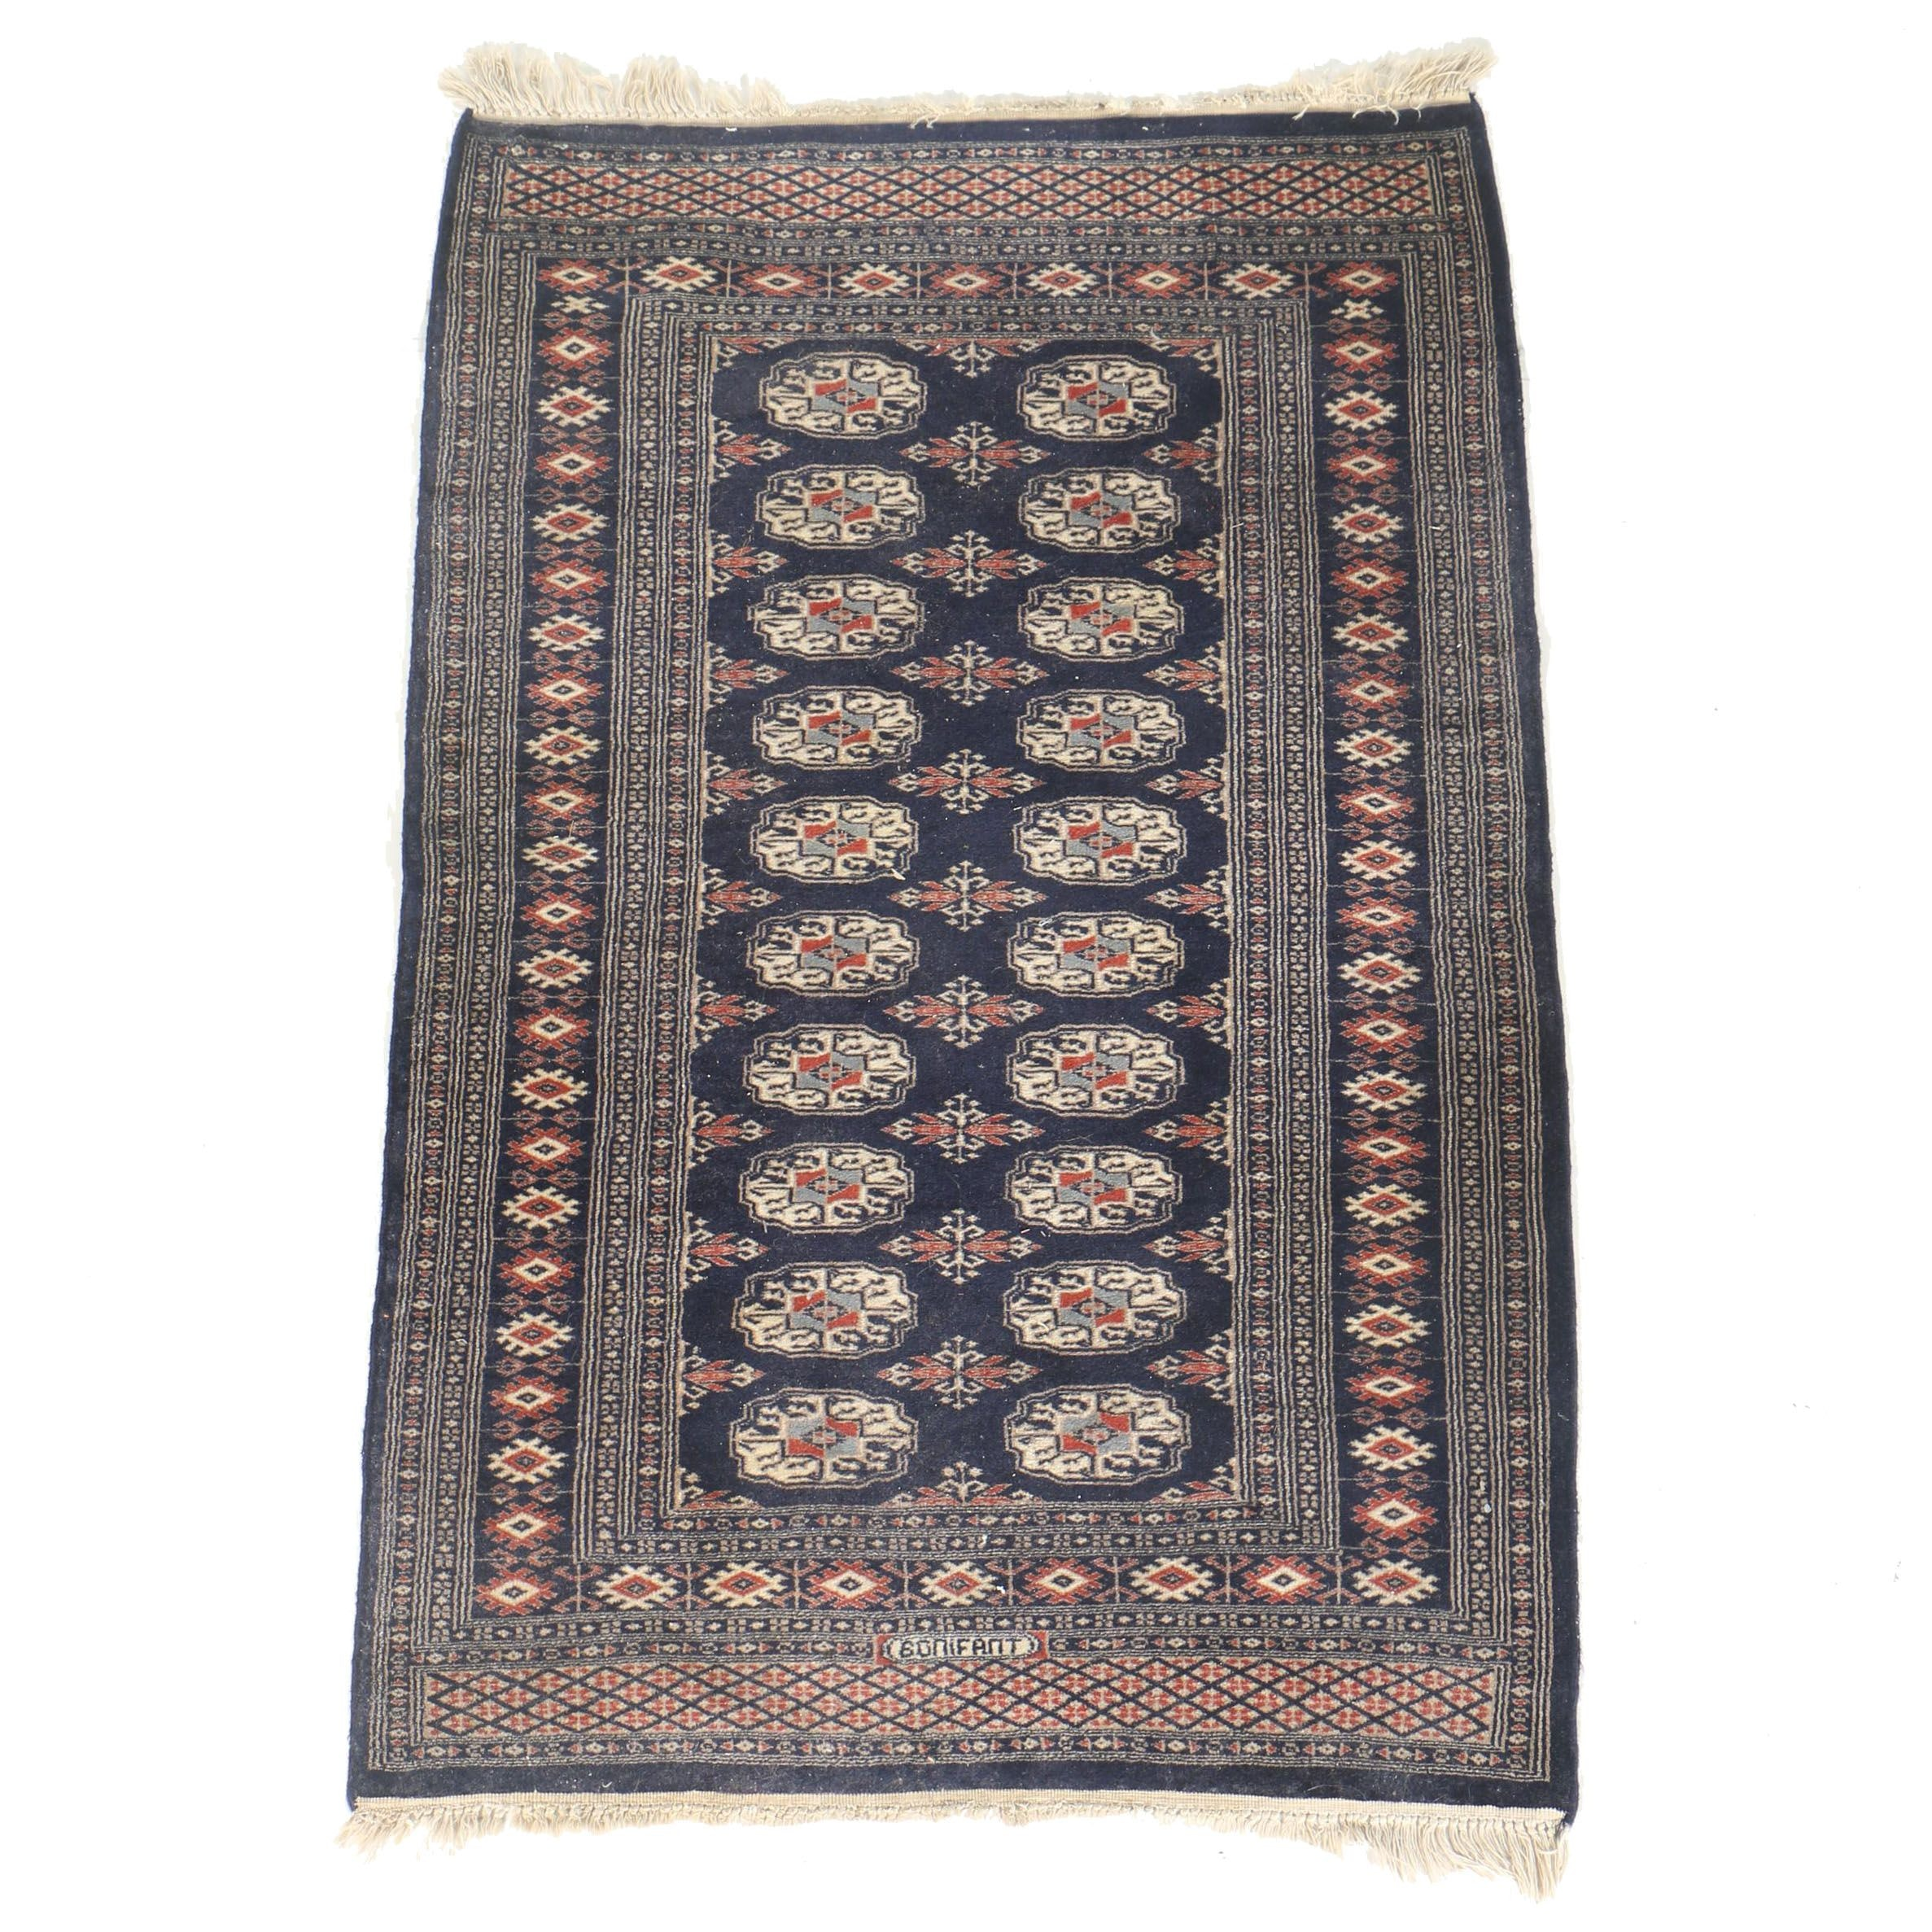 Hand-Knotted Signed Turkmen Bokhara Area Rug in Blue